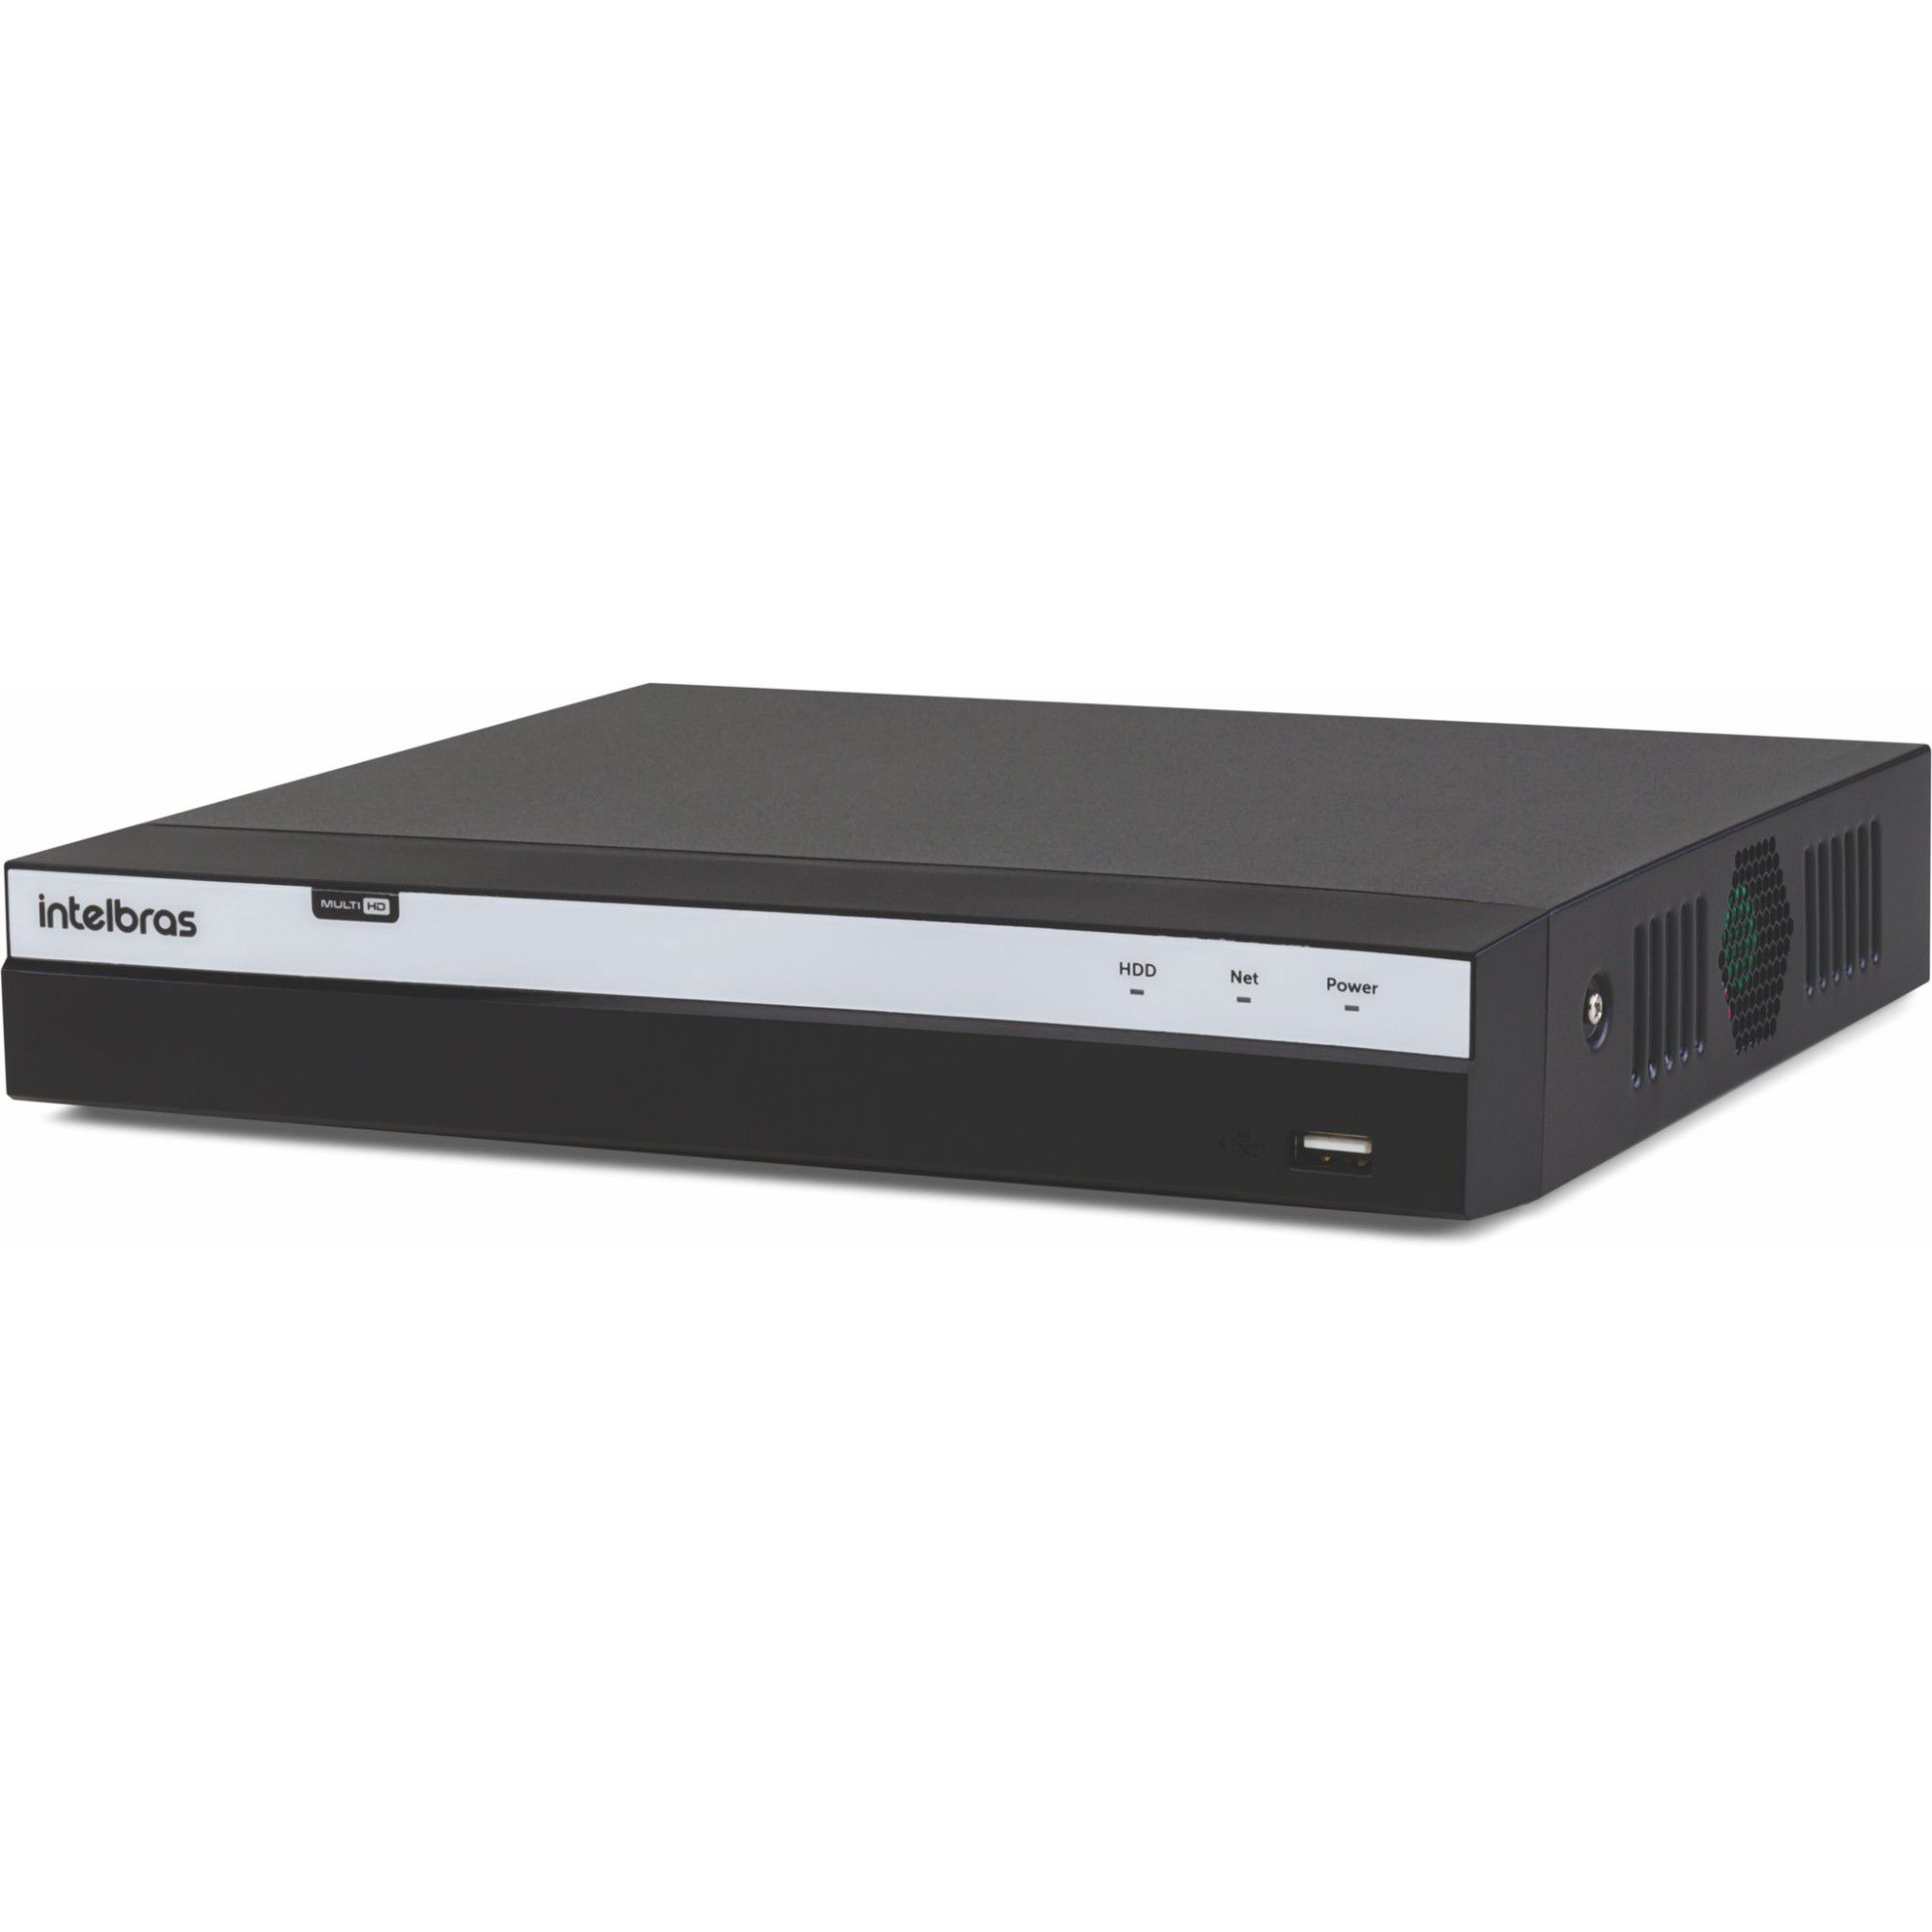 Dvr 4 Canais Multi Hd Mhdx 3104 Full Hd 1080p Intelbras